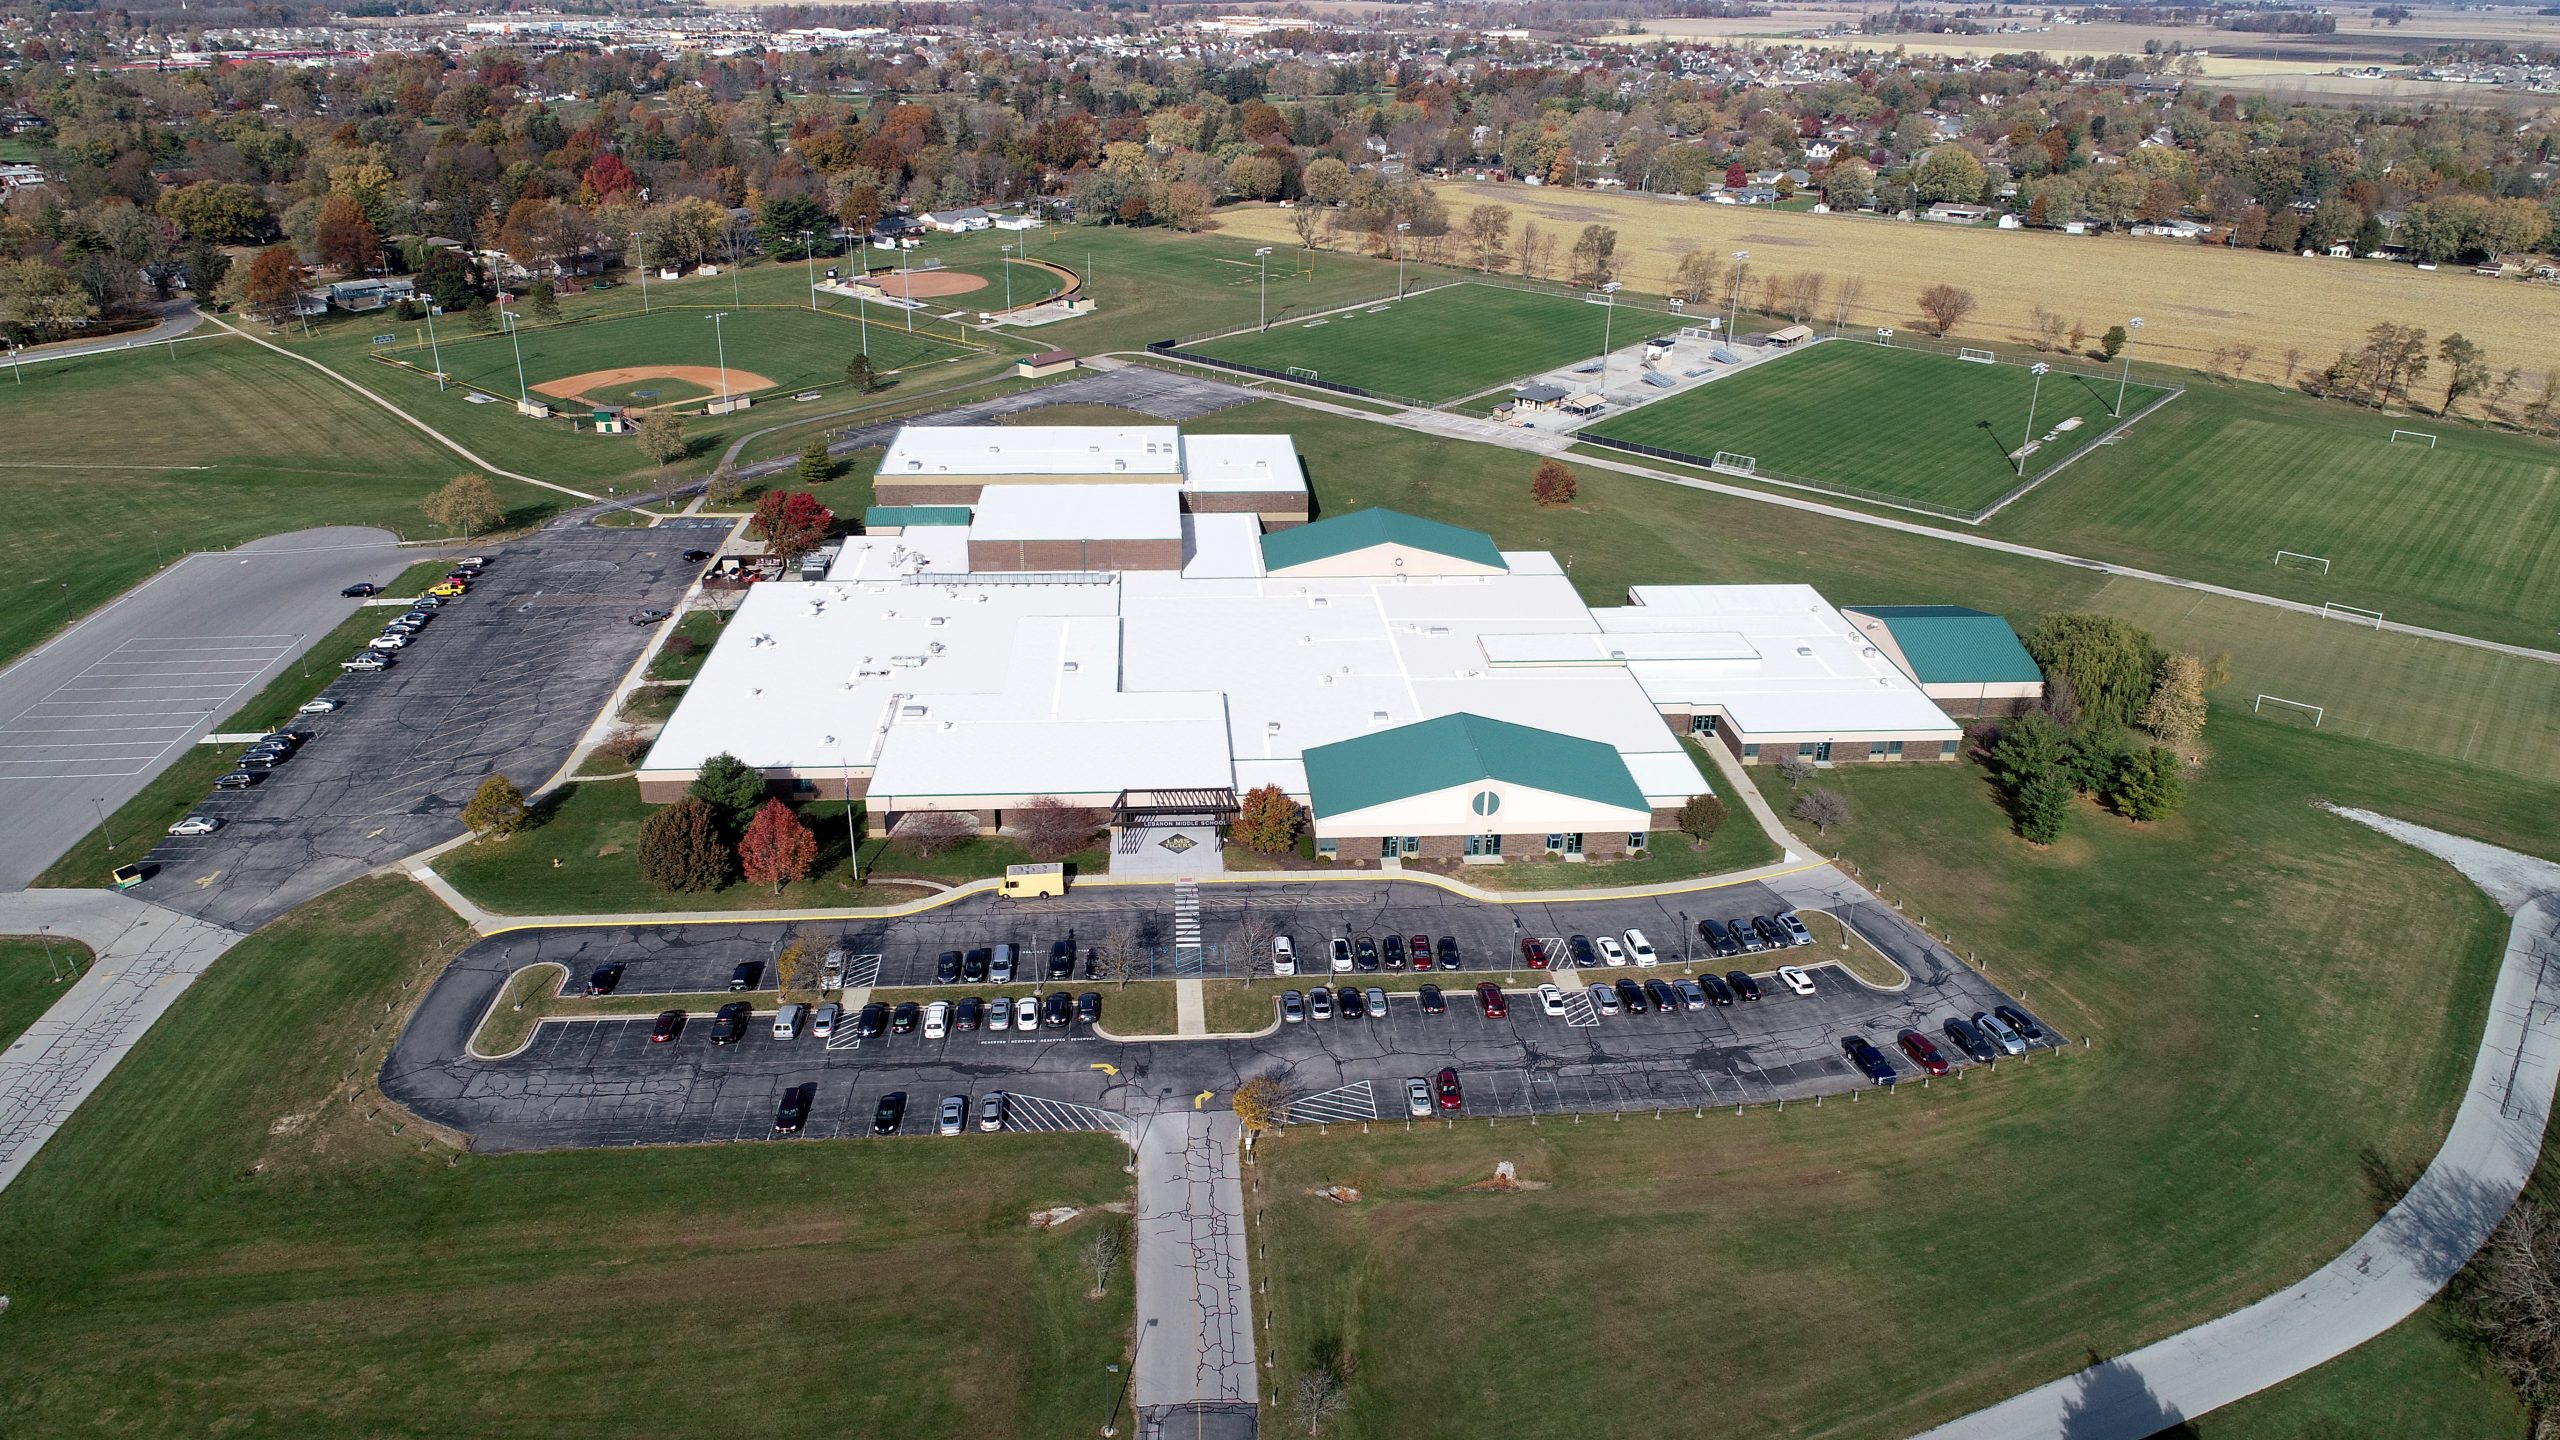 Lebanon middle school commercial roofing project by ce reeve roofing in Indiana